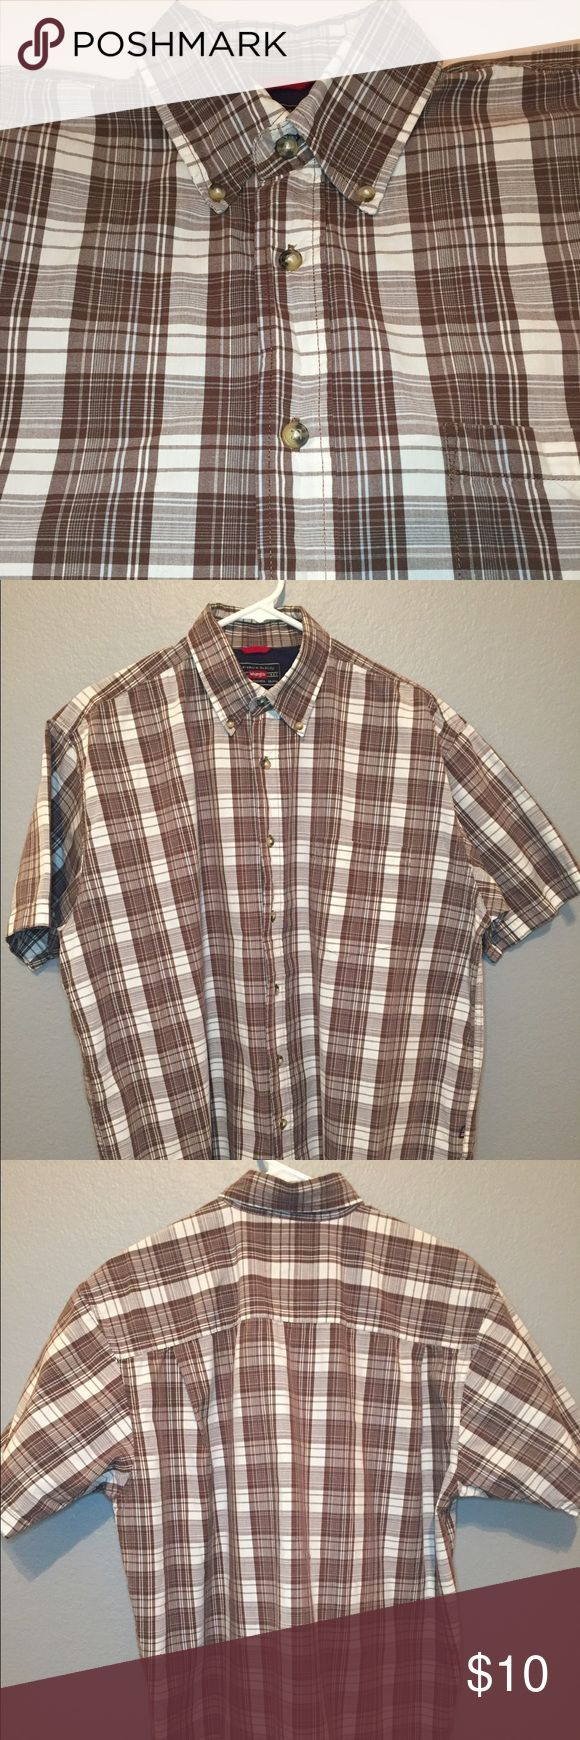 MENS' S/S CASUAL BUTTON DOWN SHIRT Brown & white plaid shirt, crisp texture, 100% cotton, gently worn and in great condition Wrangler Shirts Casual Button Down Shirts